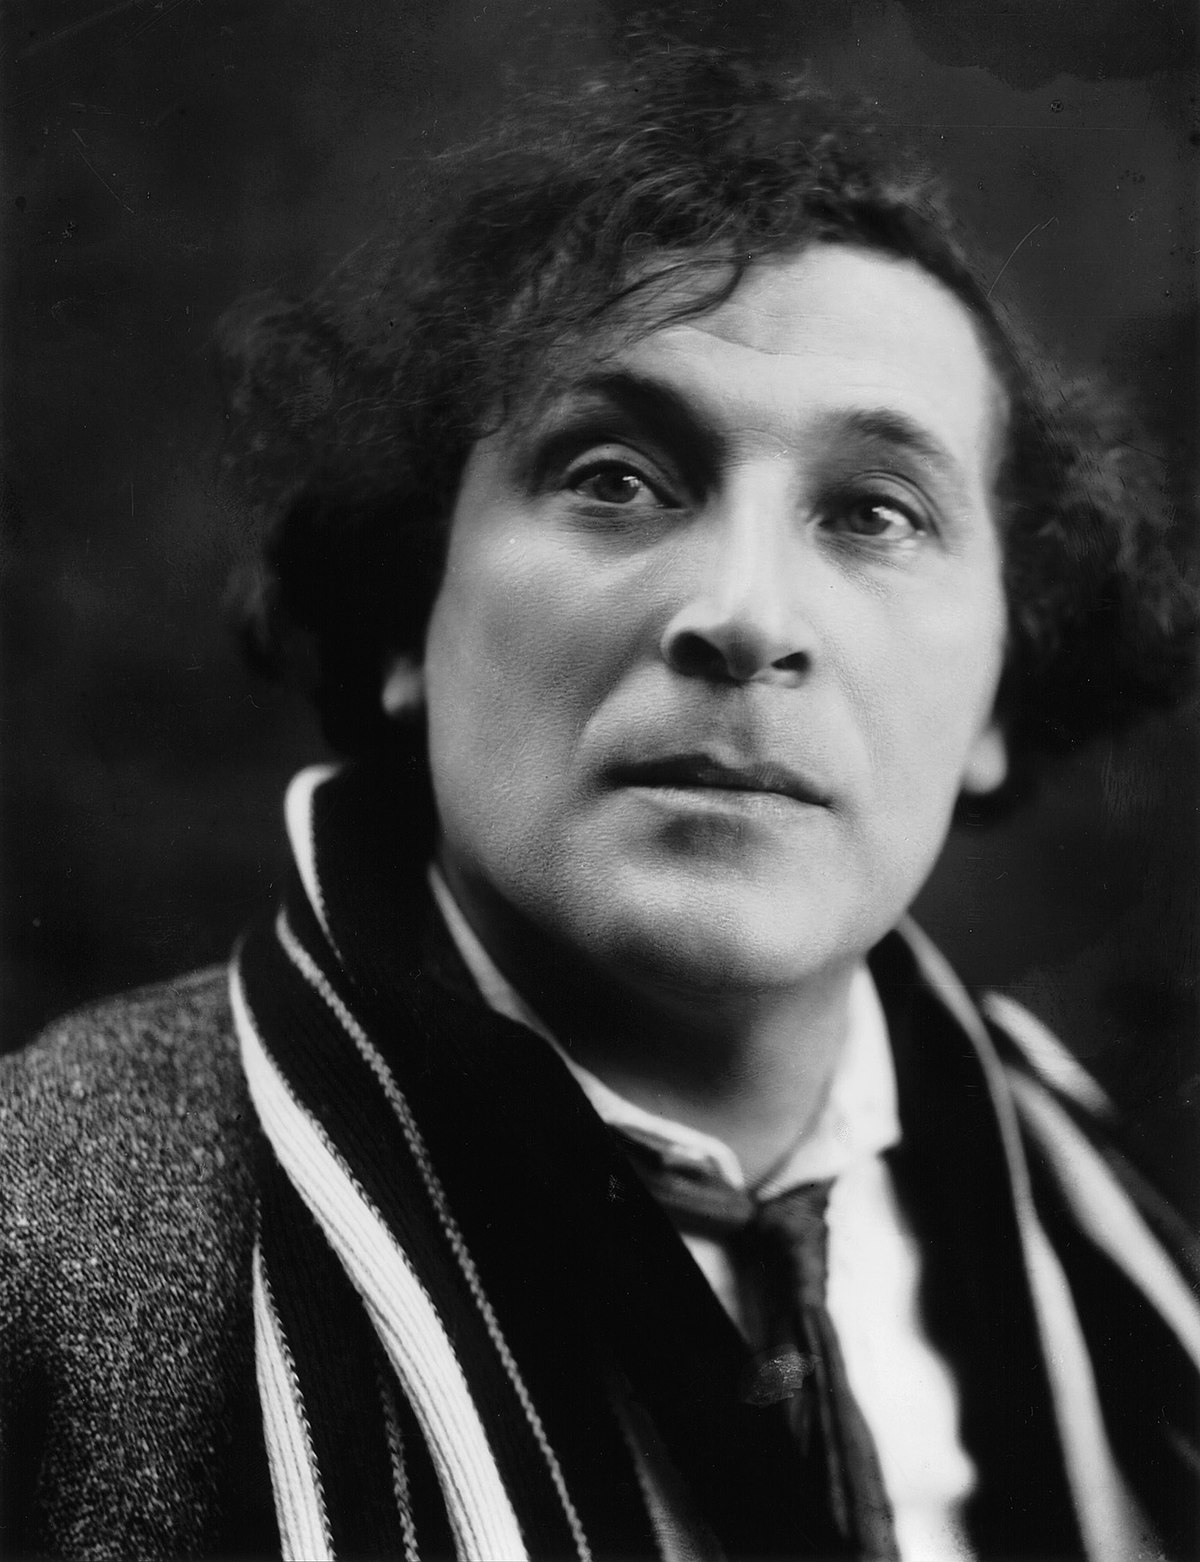 marc chagall in st paul de vence : marc chagall u rijeci :  marc chagall happy birthday en 2020/2021